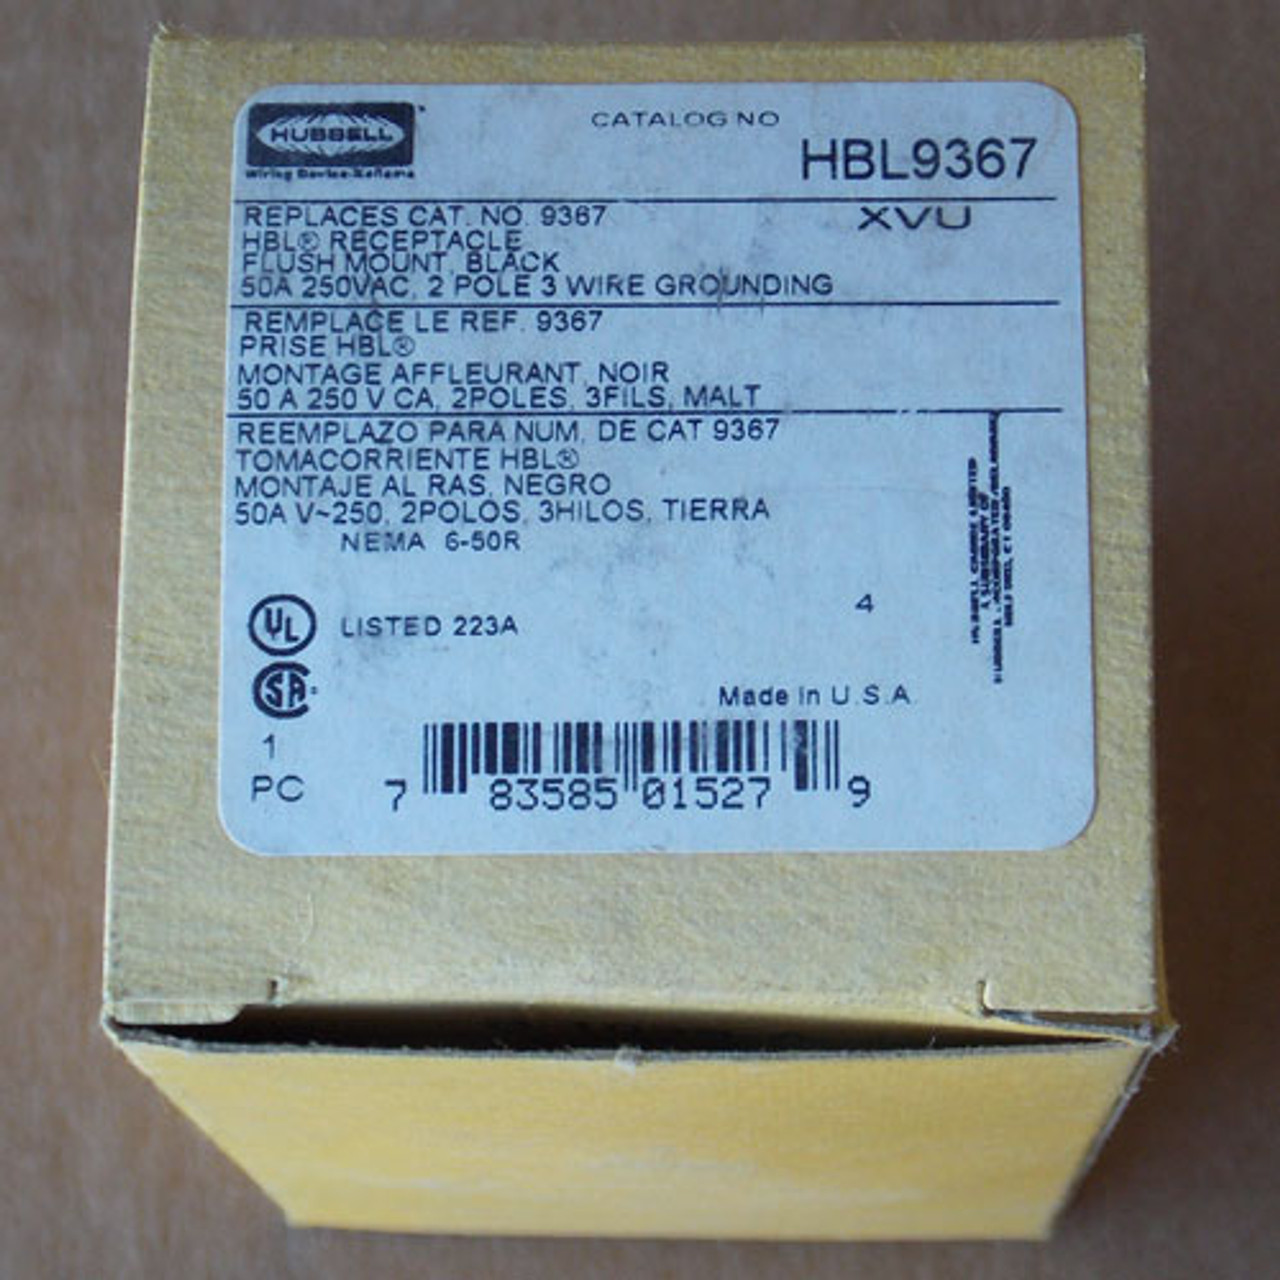 Hubbell HBL9367 50A 250V 2P3W Flush Mount Receptacle Black - New